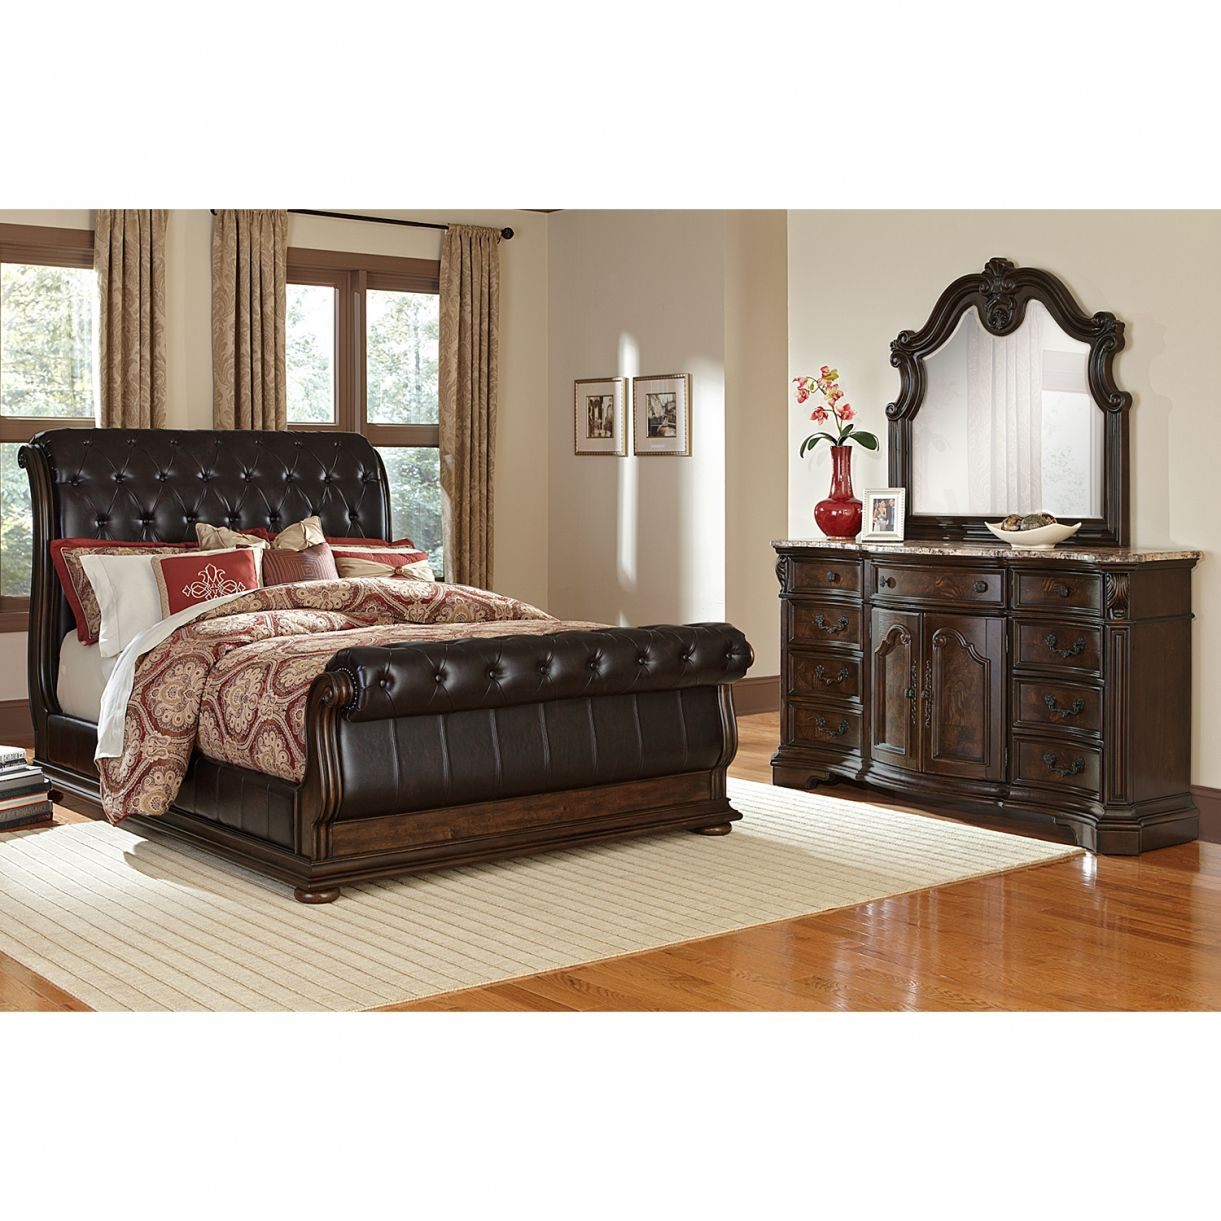 Value City Bedroom Furniture - Bedroom Interior Decorating Check ...